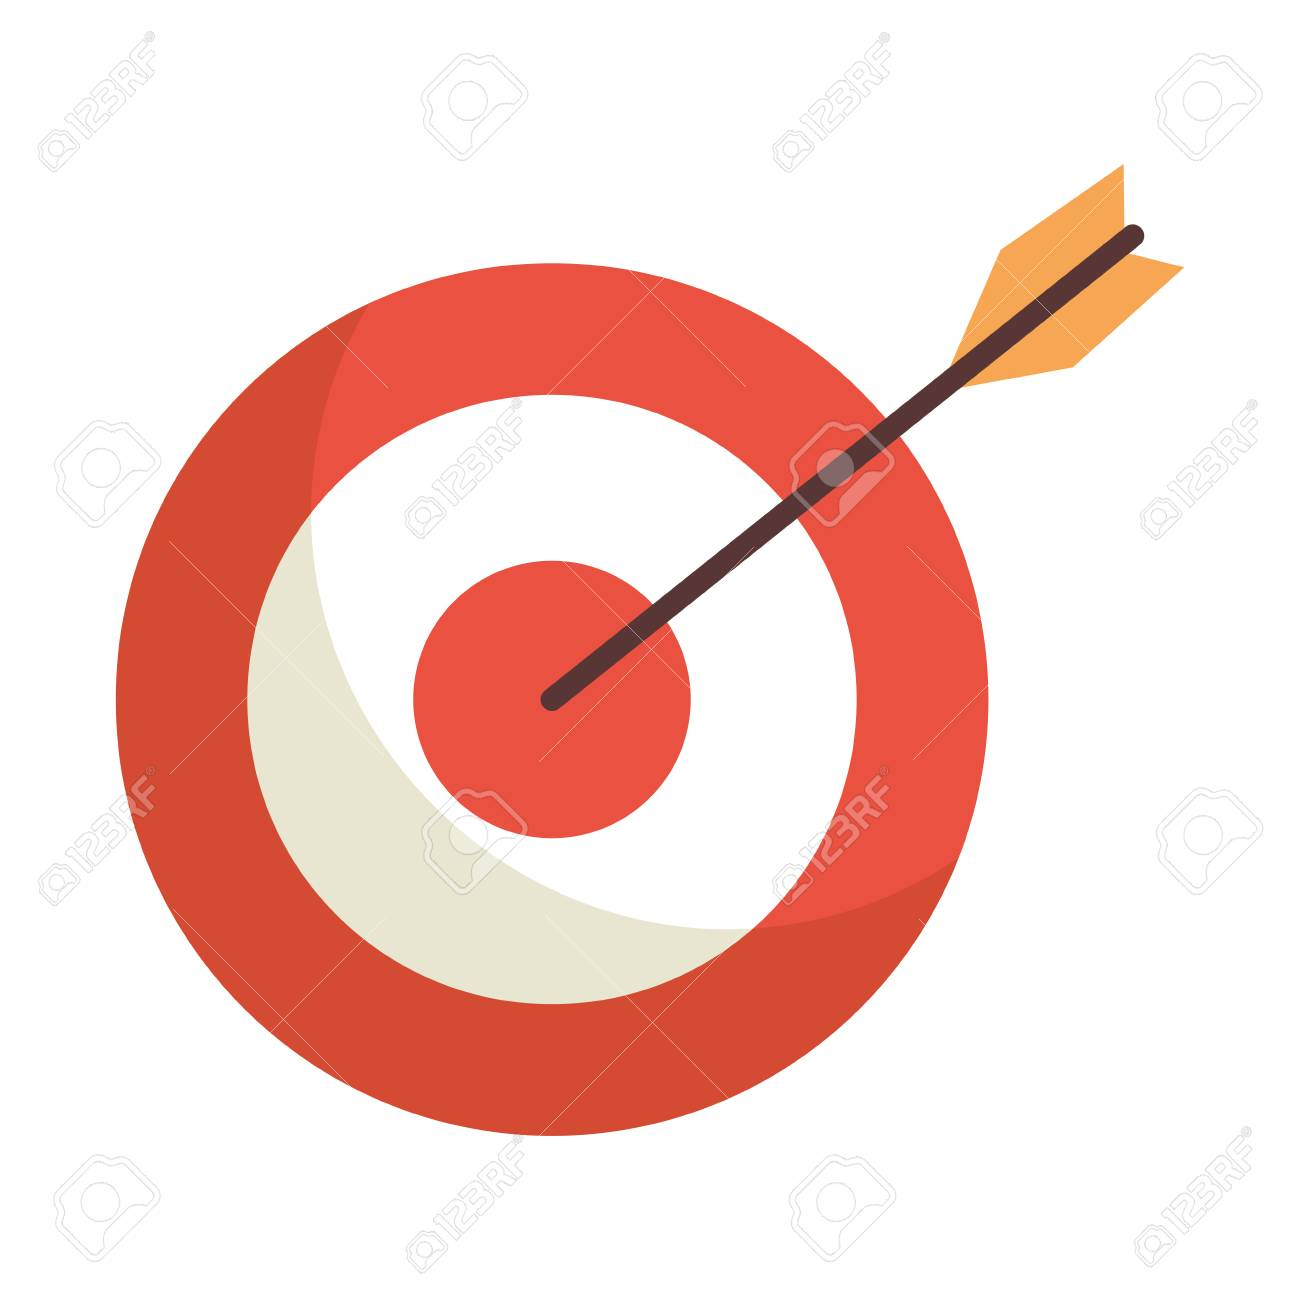 target with arrow icon vector illustration design.